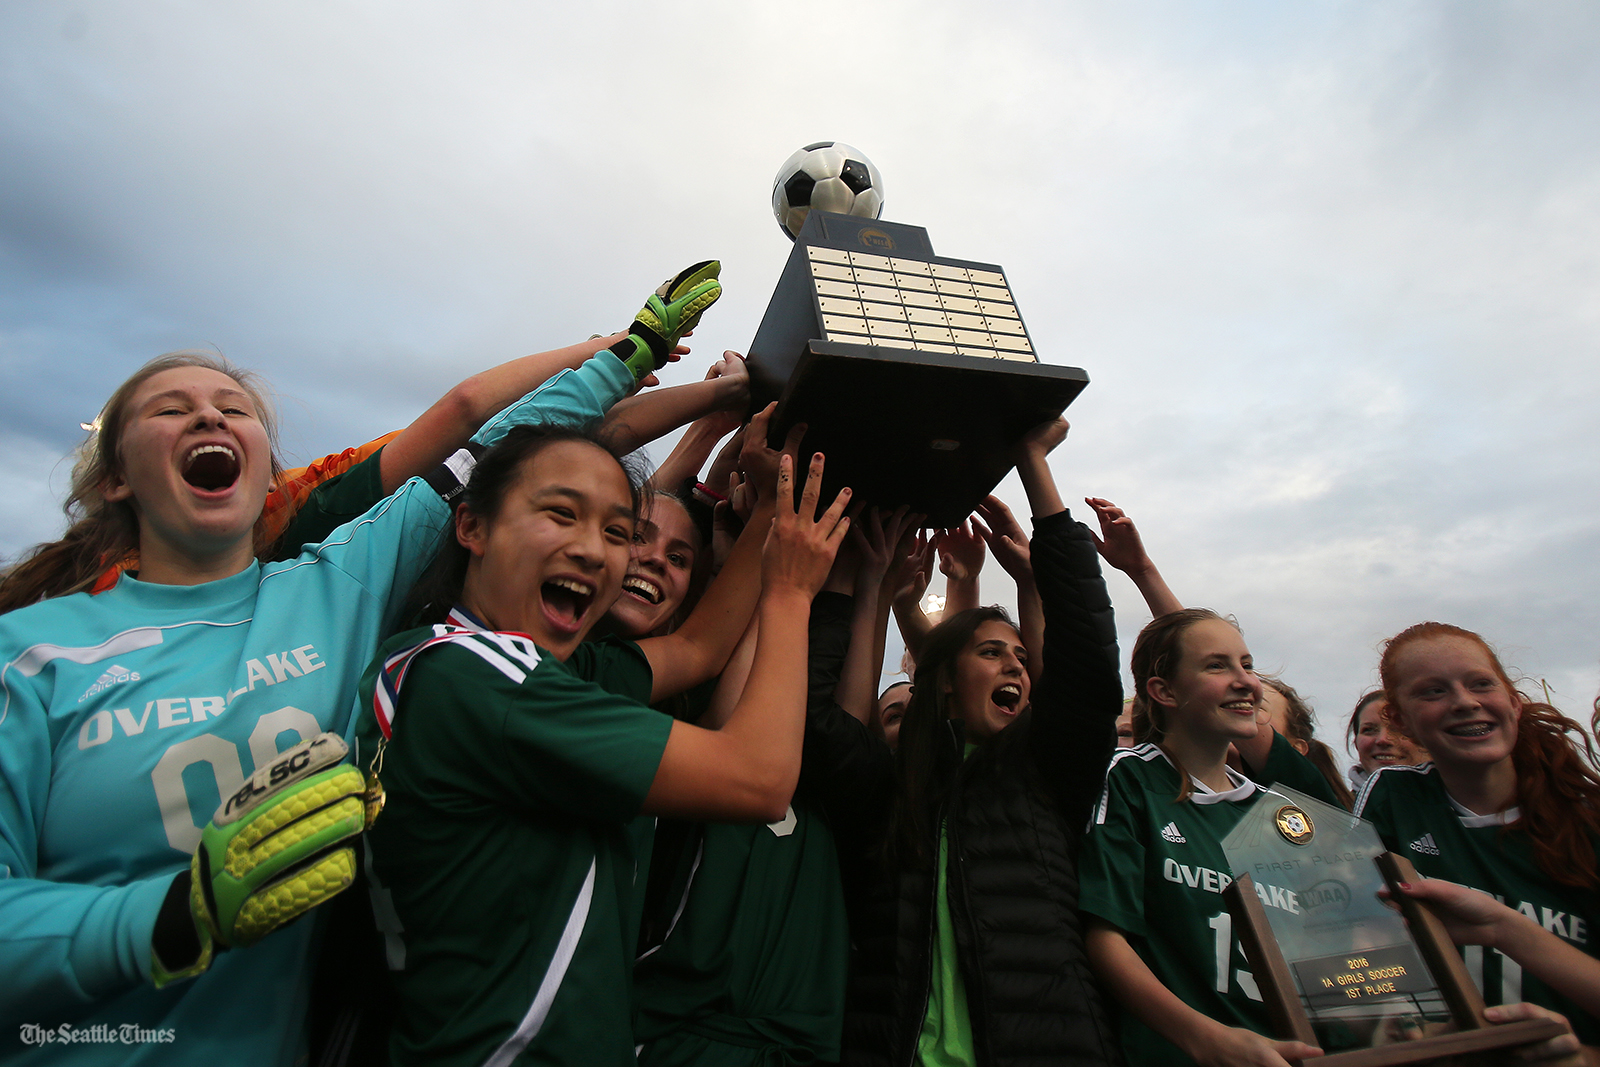 The Overlake High School women soccer team celebrates after winning the class 1A soccer state championship 3-1 over La Salle High School at Shoreline Stadium on Saturday, November 19, 2016.